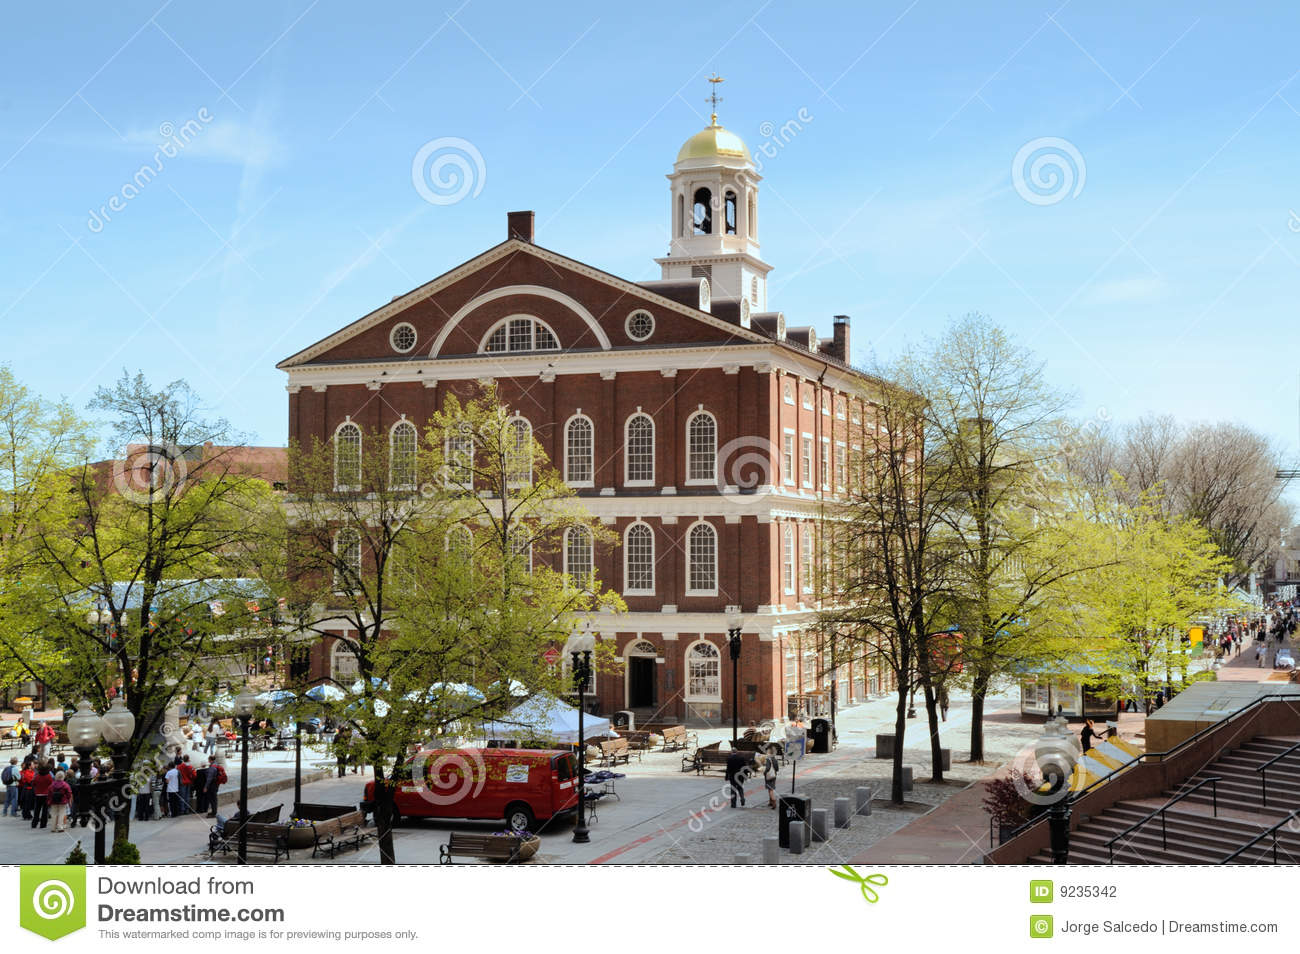 Best Food In Faneuil Hall